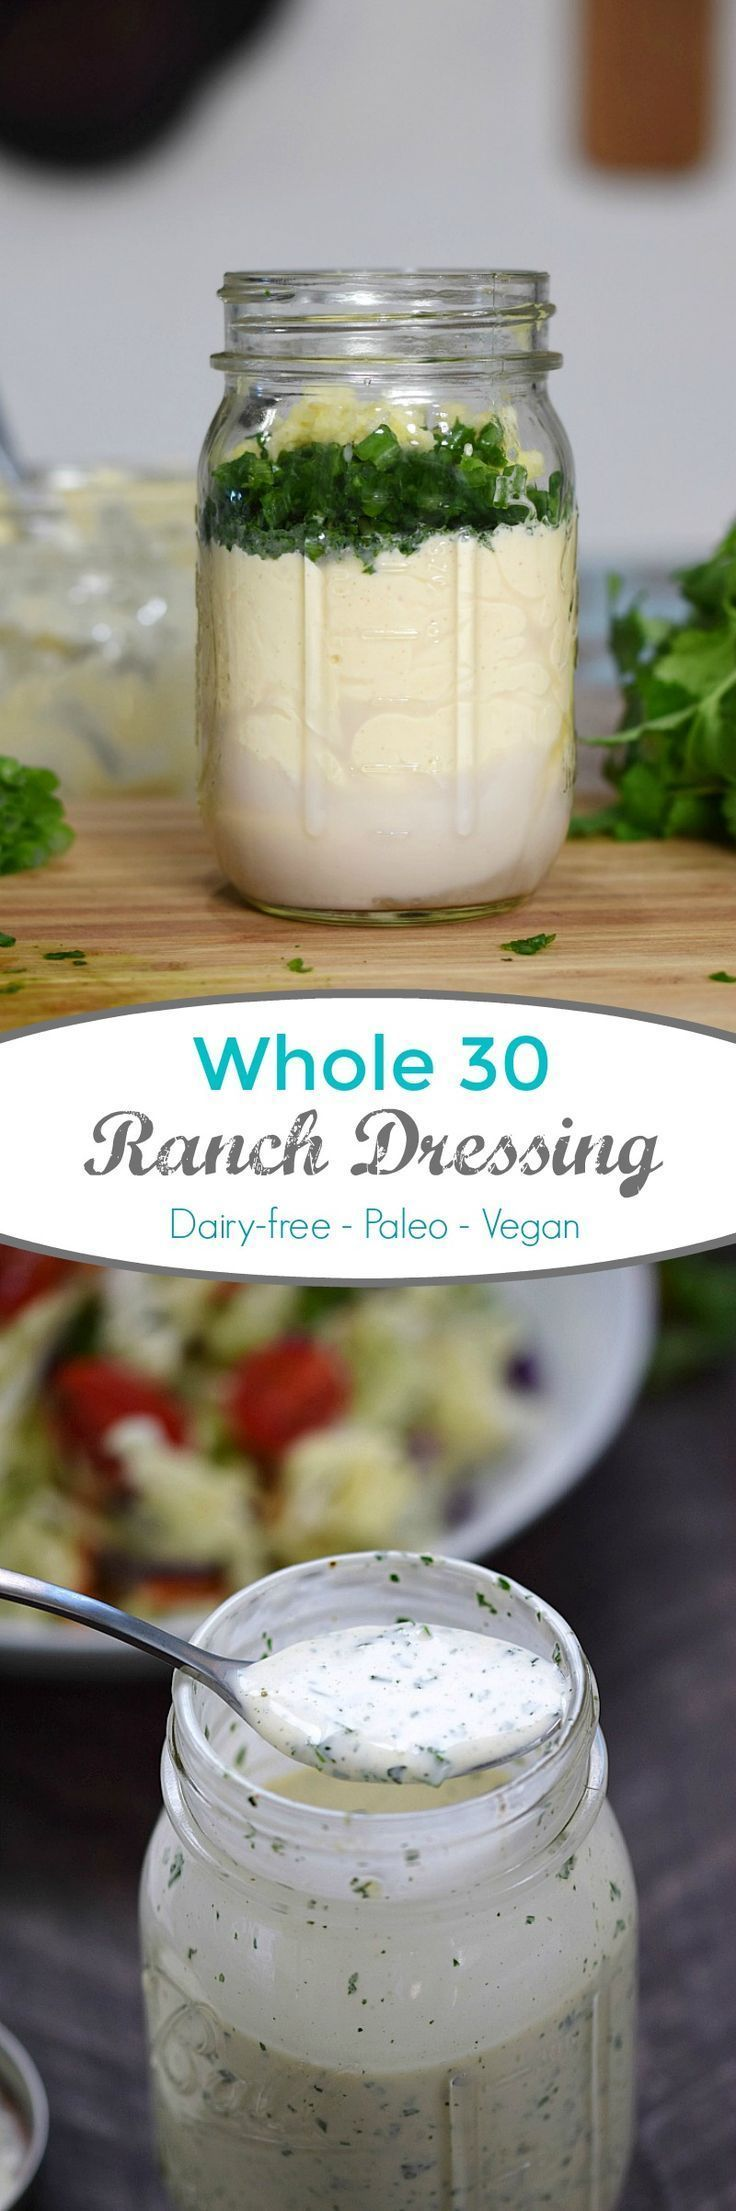 This is the best Whole 30 Ranch Dressing ever. Fresh and delicious flavor, and only takes minutes to make